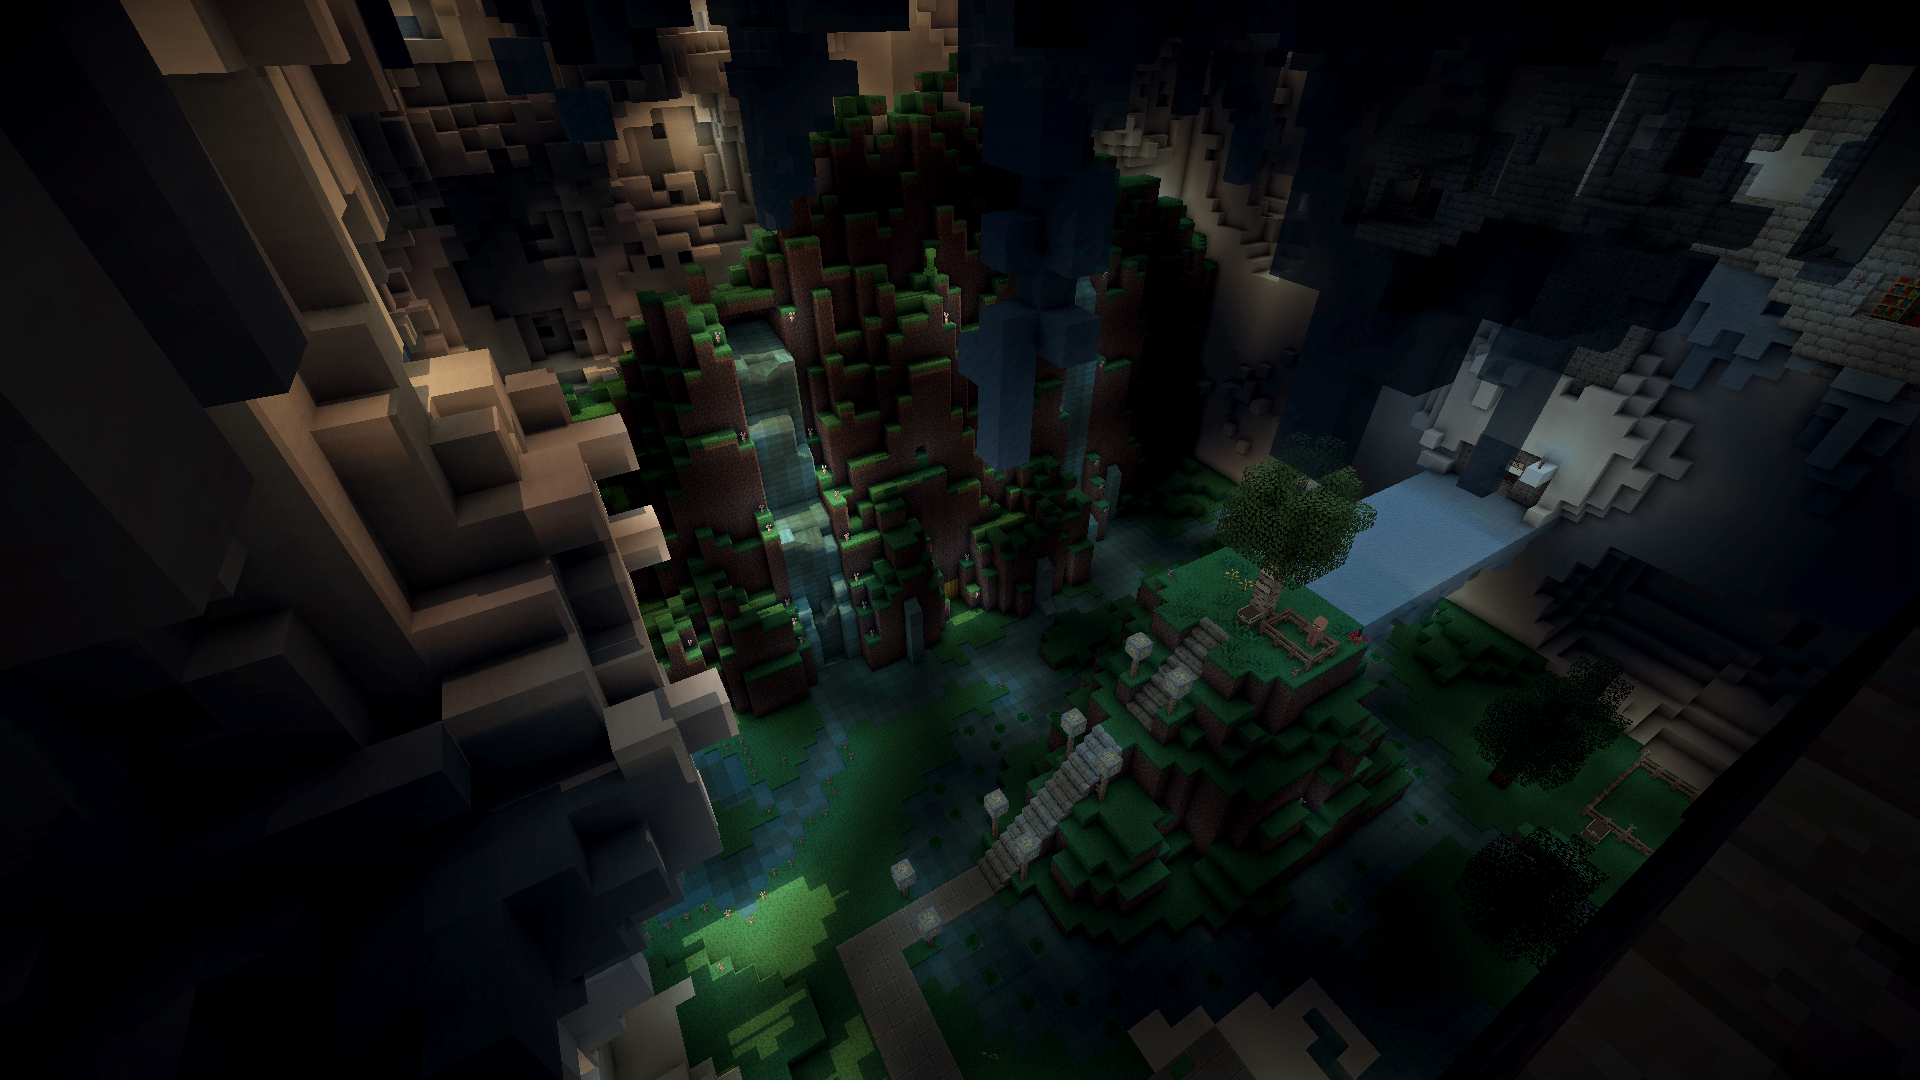 minecraft-texture-pack-16x16-pixe- perfection-nuit